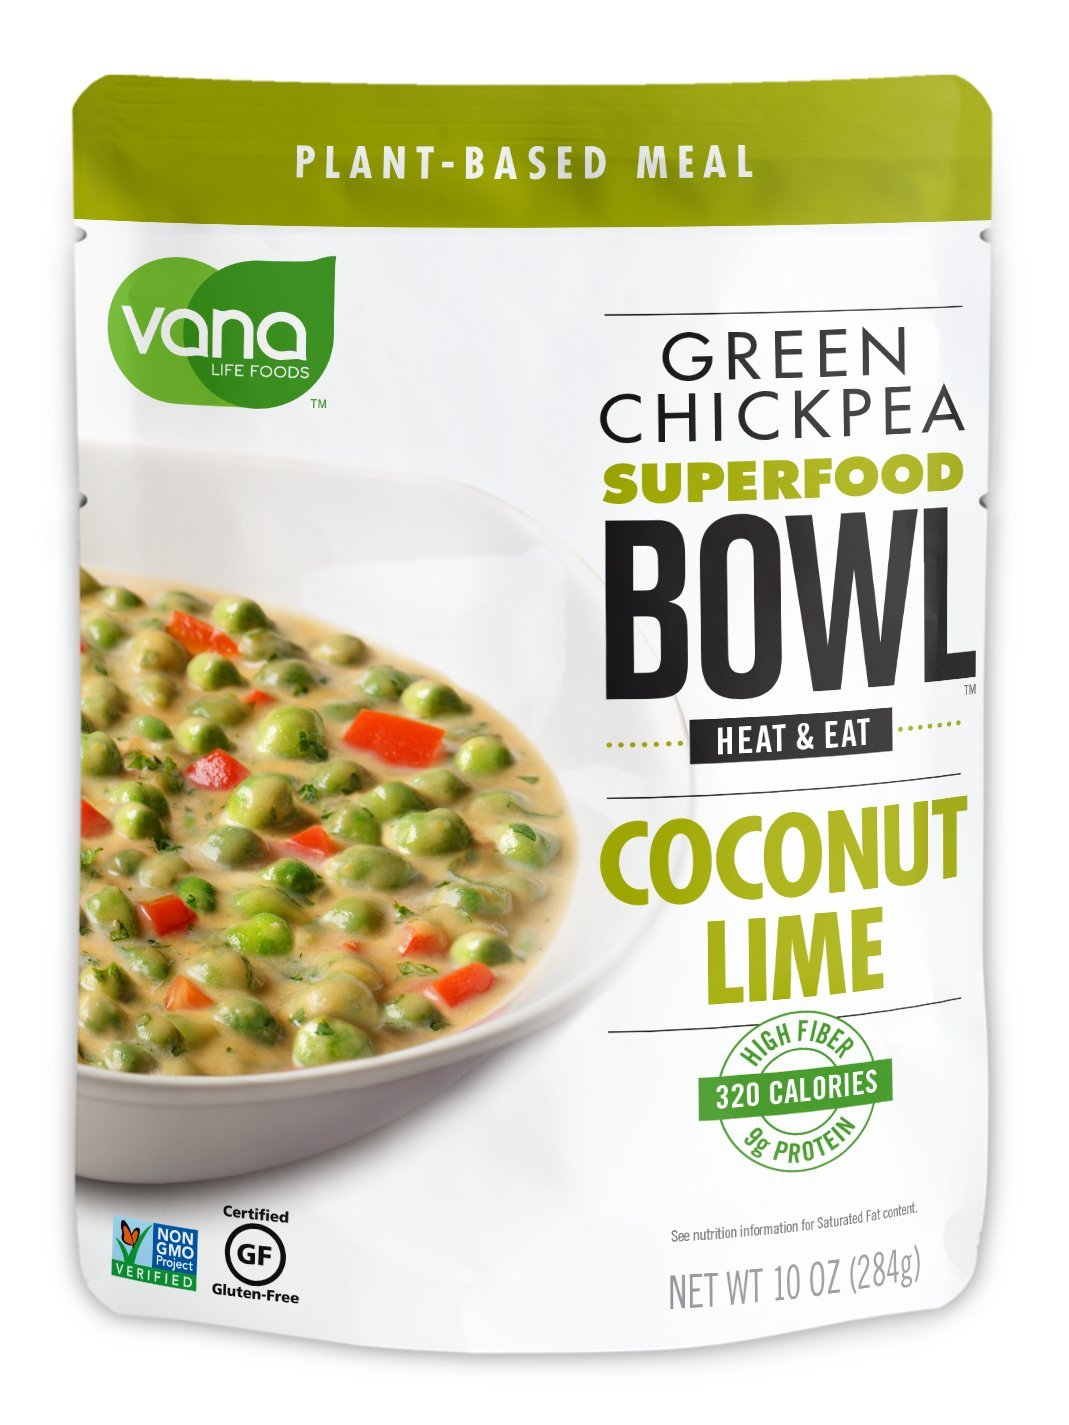 Vana Life's VEGAN, GLUTEN FREE, PLANT BASED PROTEIN Green Chickpea SUPER FOOD BOWL- 100% Natural with Coconut, Lime and Cilantro (6 Packaged Bowls) by Vana Life Foods